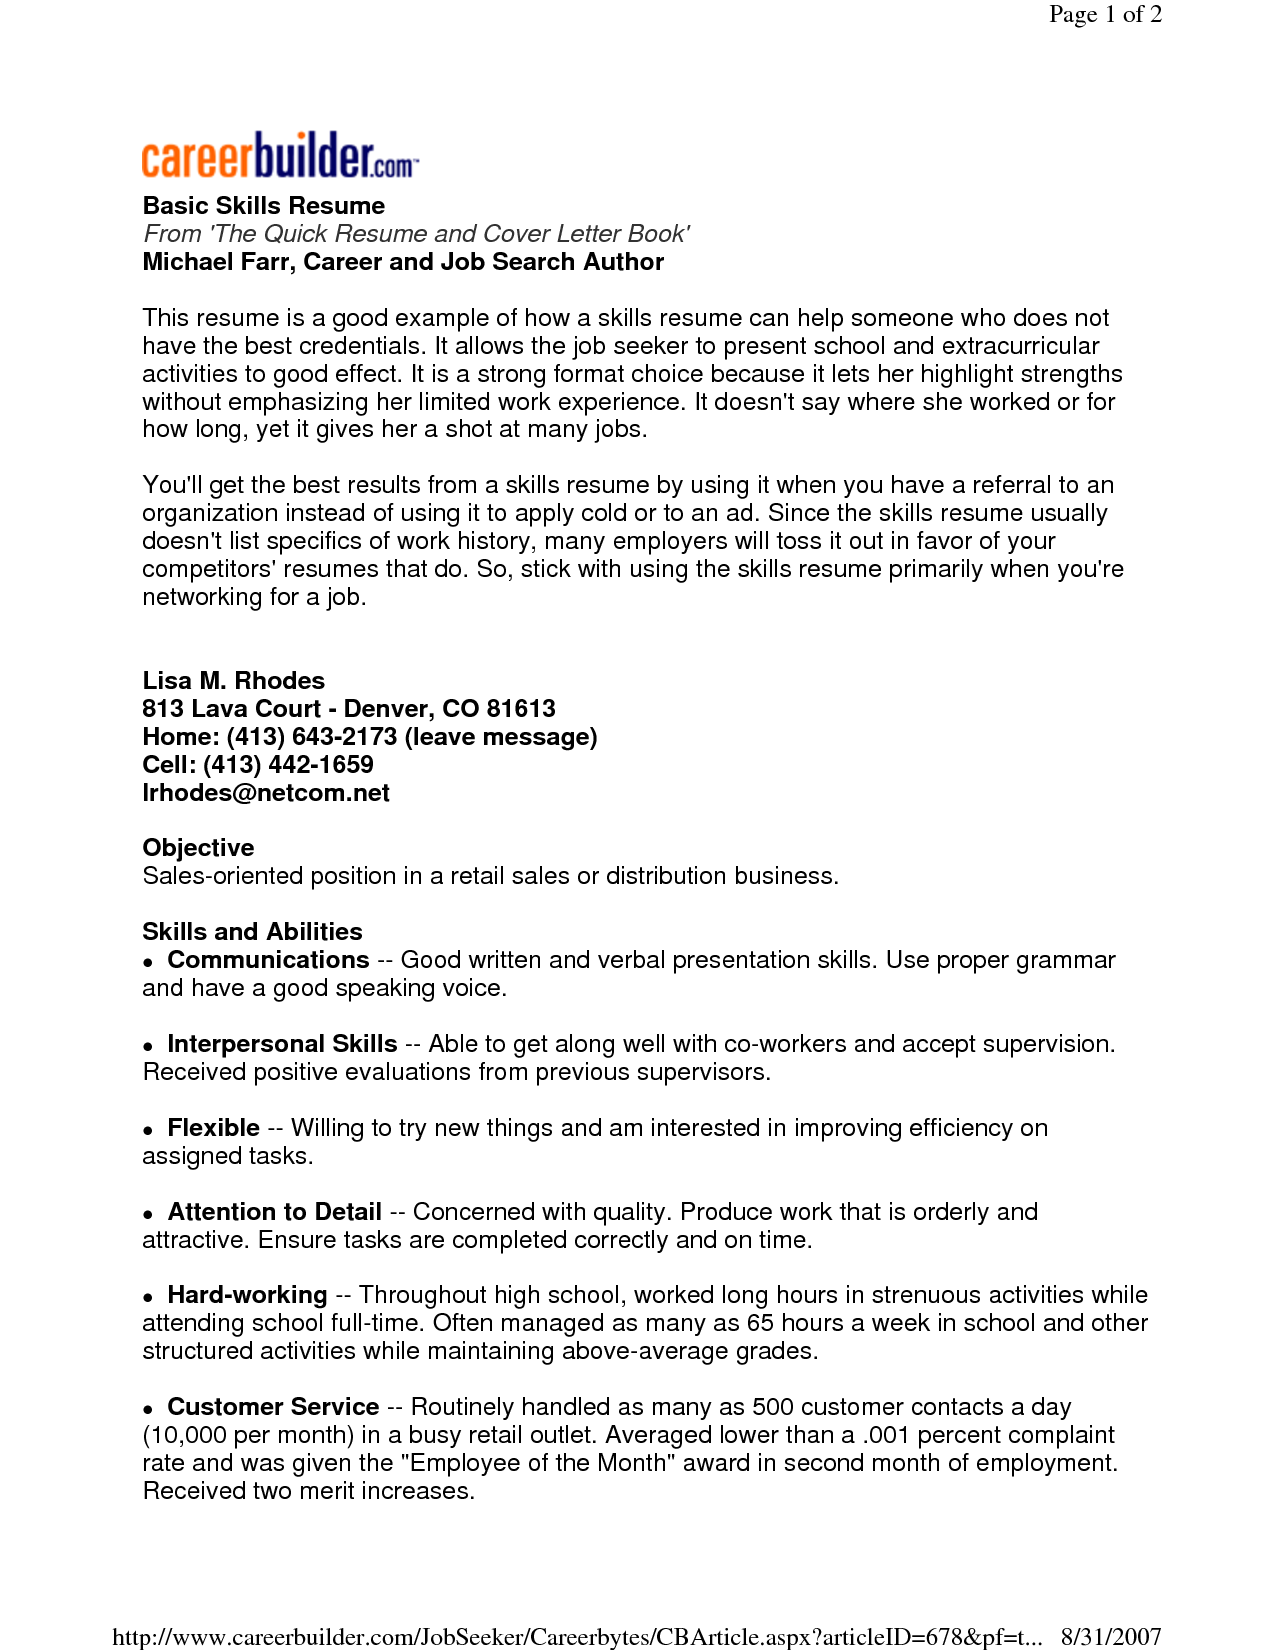 Resume Objective Sales Fascinating Basic Resume Examples Skills  Httpwww.resumecareerbasic .